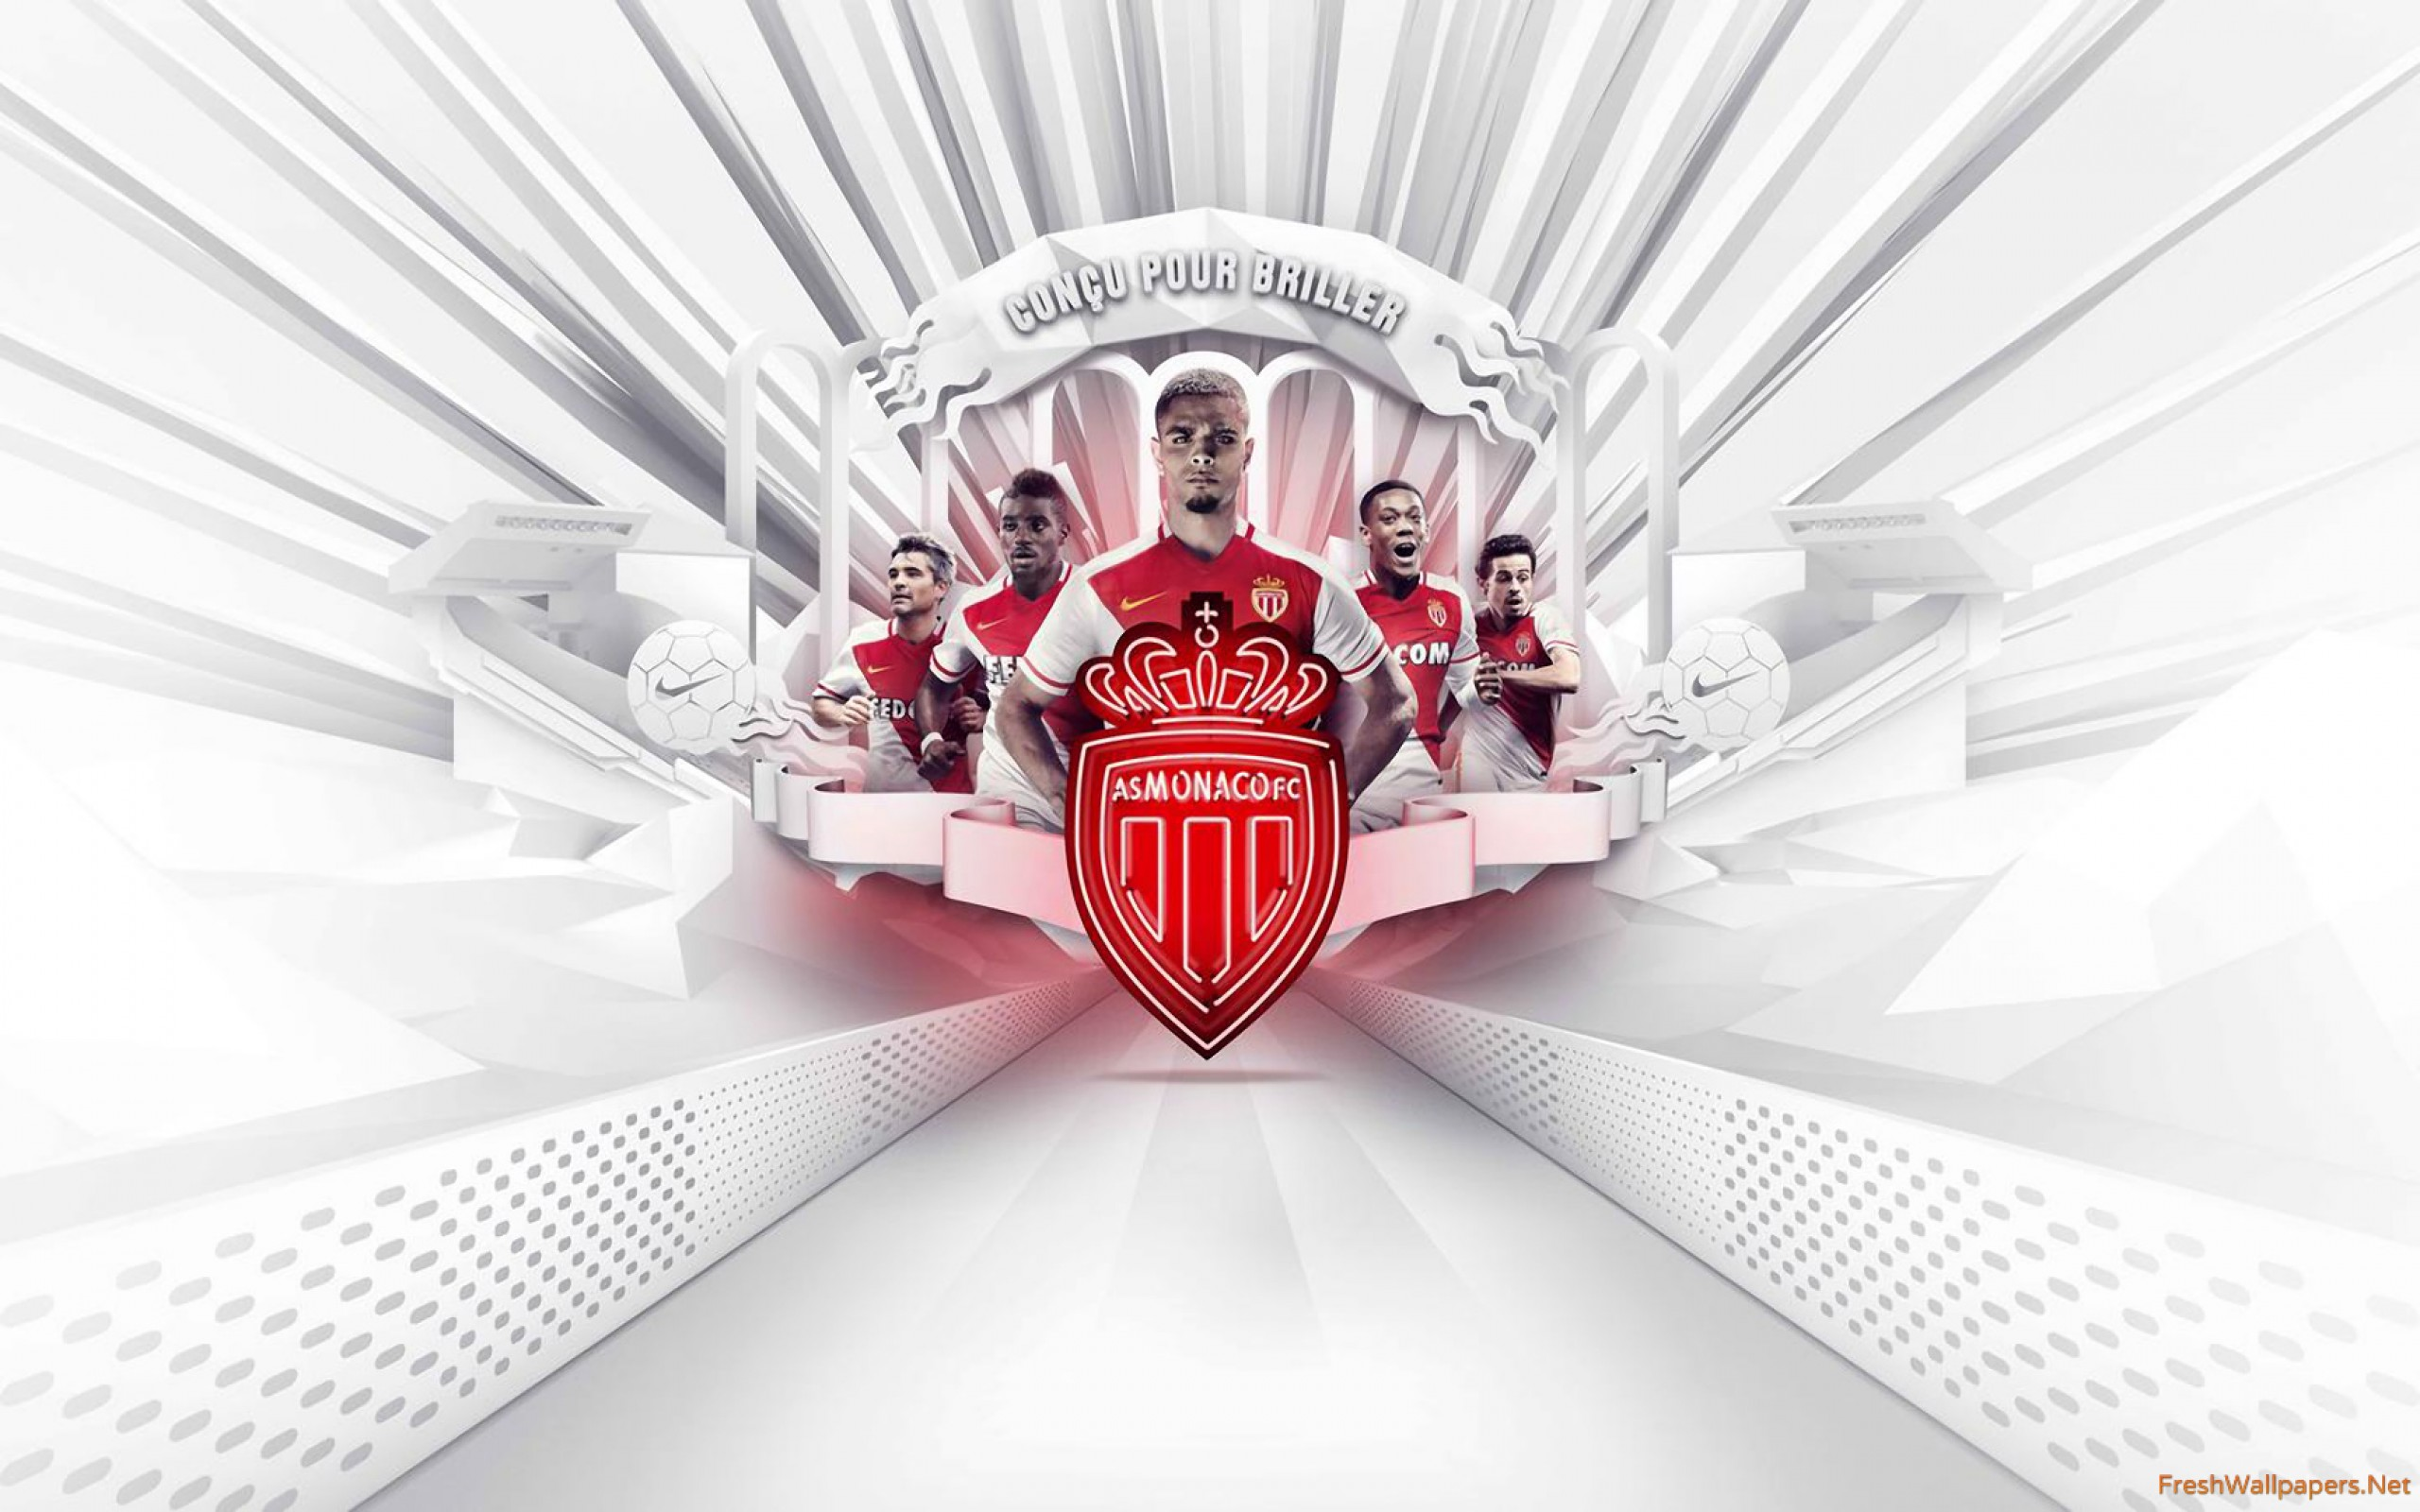 AS Monaco 2015 2016 Nike Football Home Kit wallpapers 2560x1600